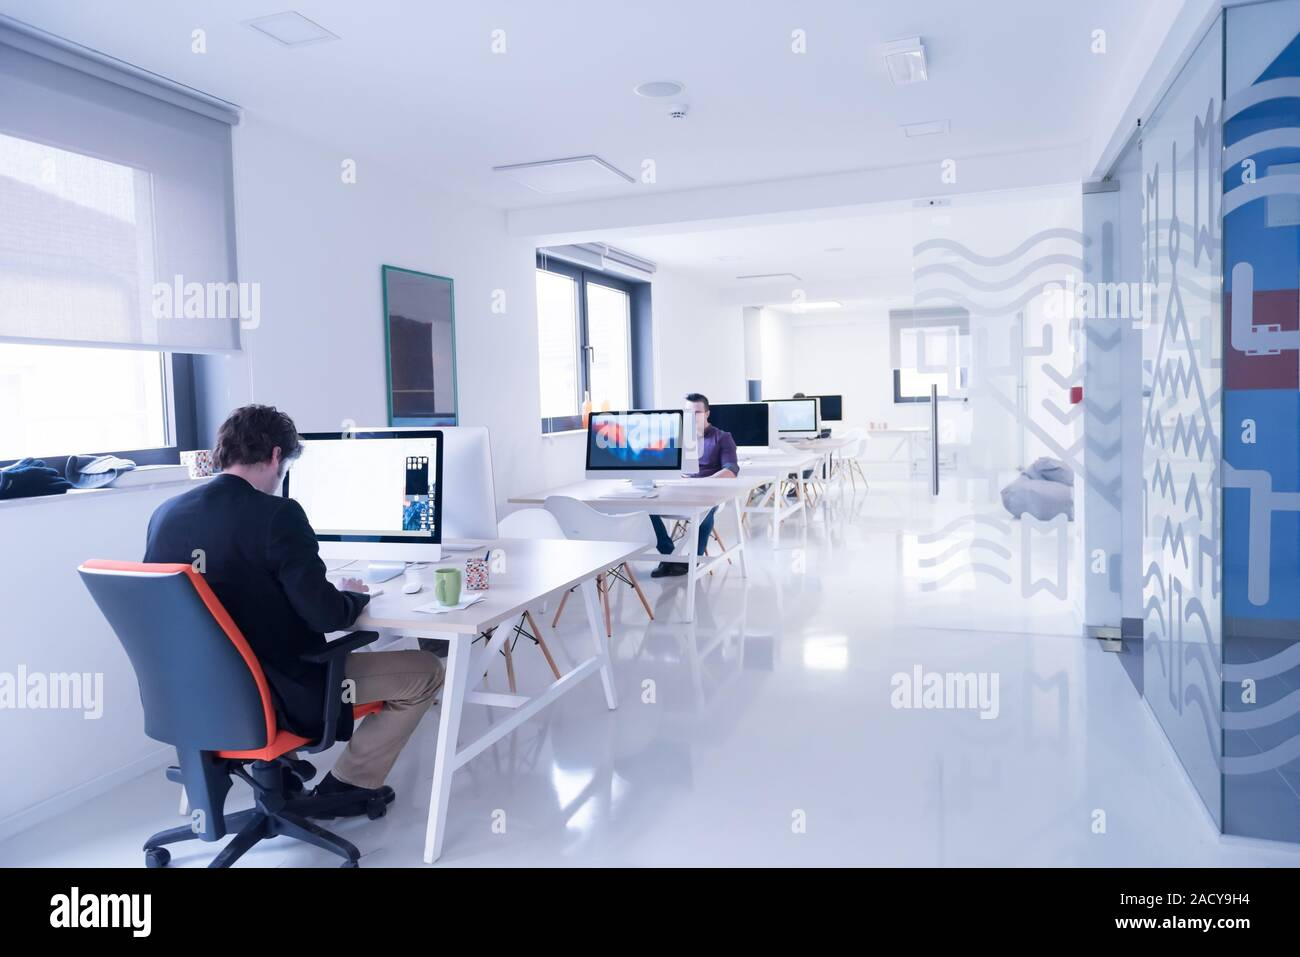 Startup Business Software Developer Working On Computer Stock Photo Alamy